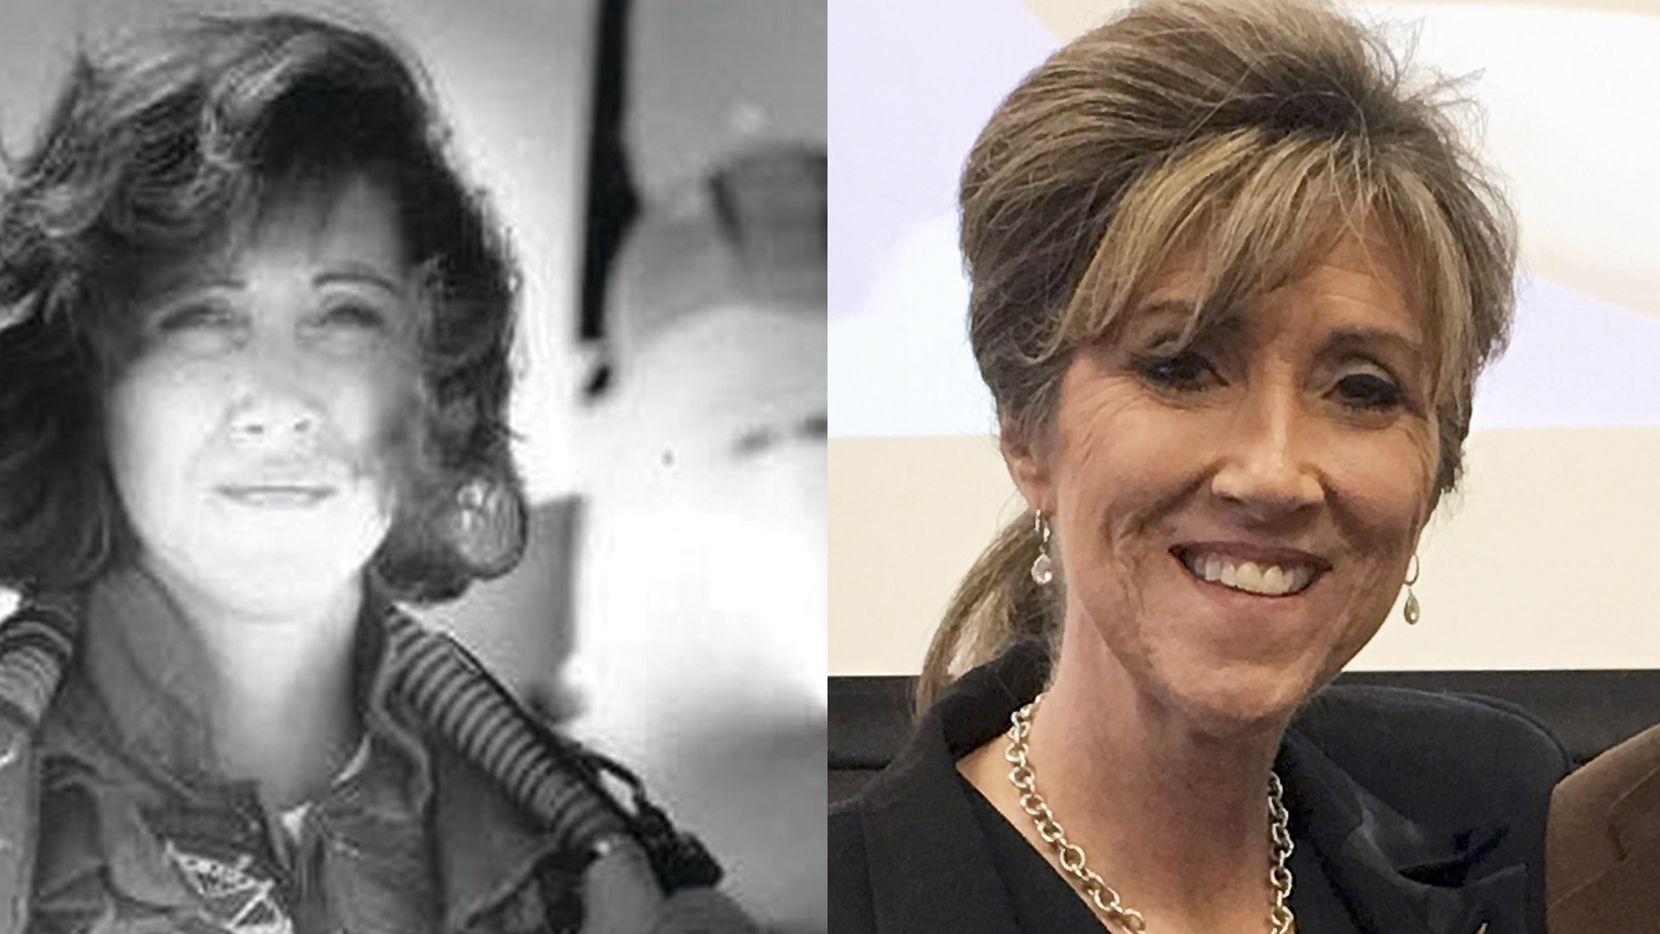 LEFT: Tammie Jo Shults as a Navy fighter pilot in the early 1990s. RIGHT:  Shults in a March 2017 photo. Shults was piloting a Southwest Airlines jetliner bound from New York to Dallas when one of its engines exploded Tuesday, killing a passenger and causing a midflight crisis.